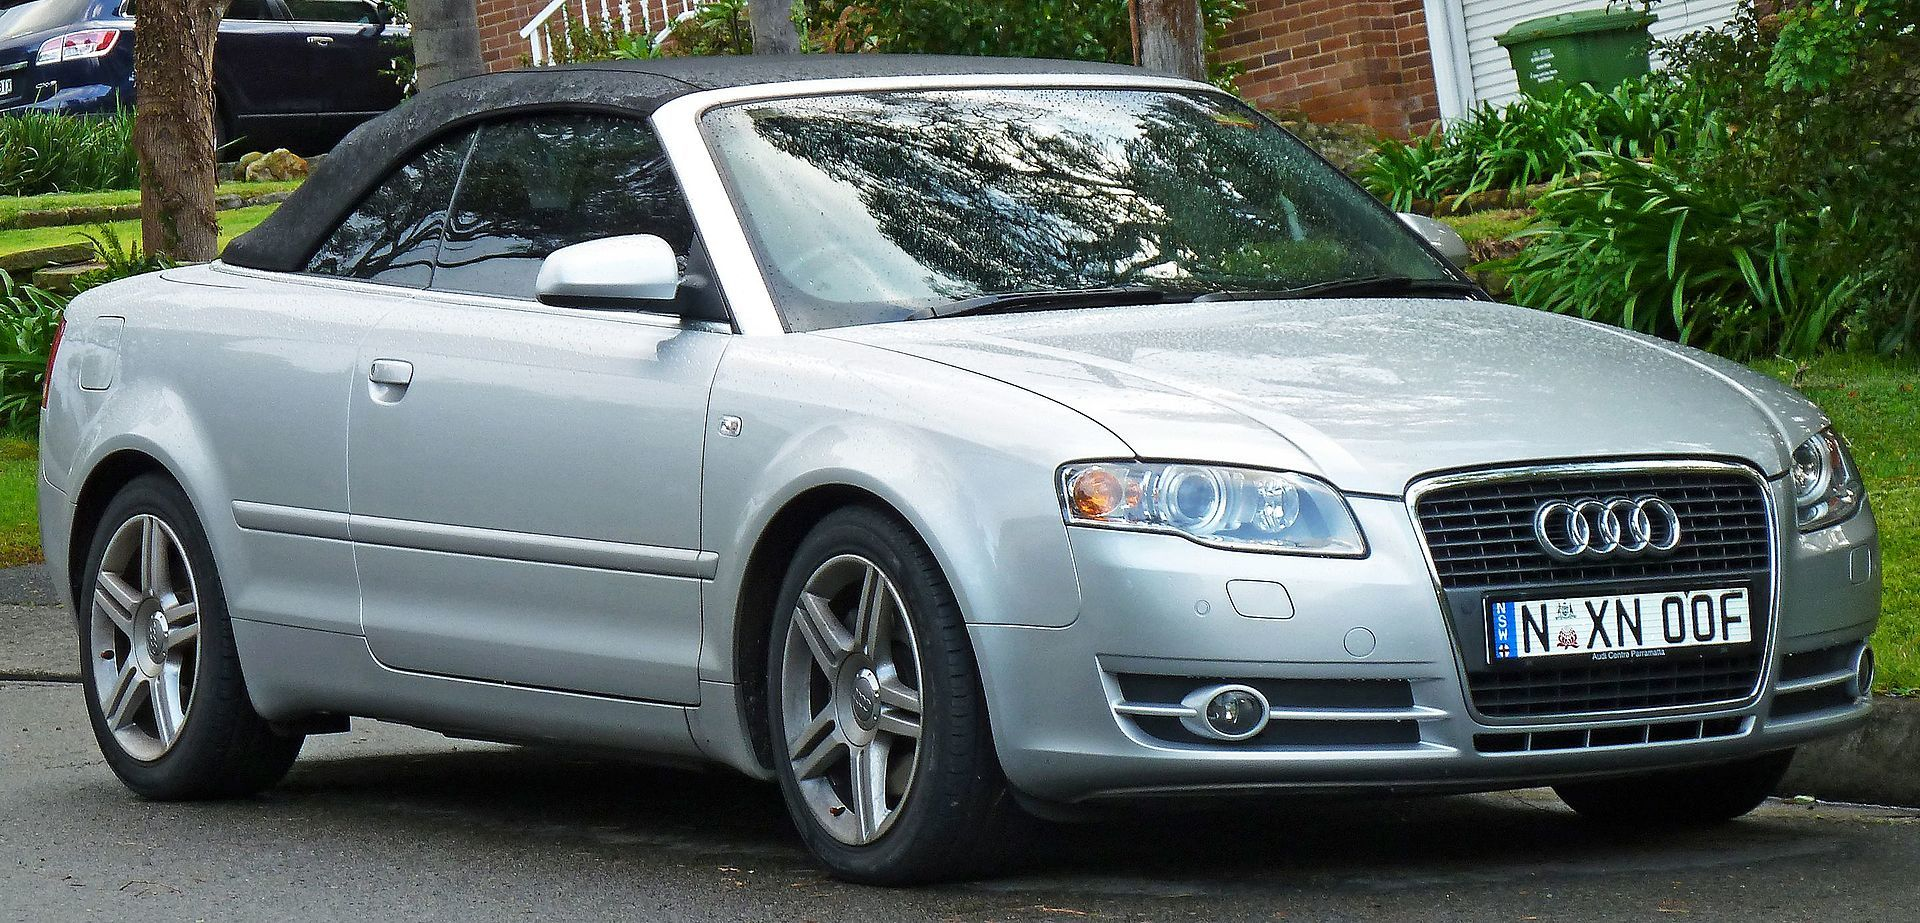 Audi a4 avant 1995 2001 used car review car review rac drive - 2006 2009 Audi A4 8he 3 2 Fsi Convertible 2011 06